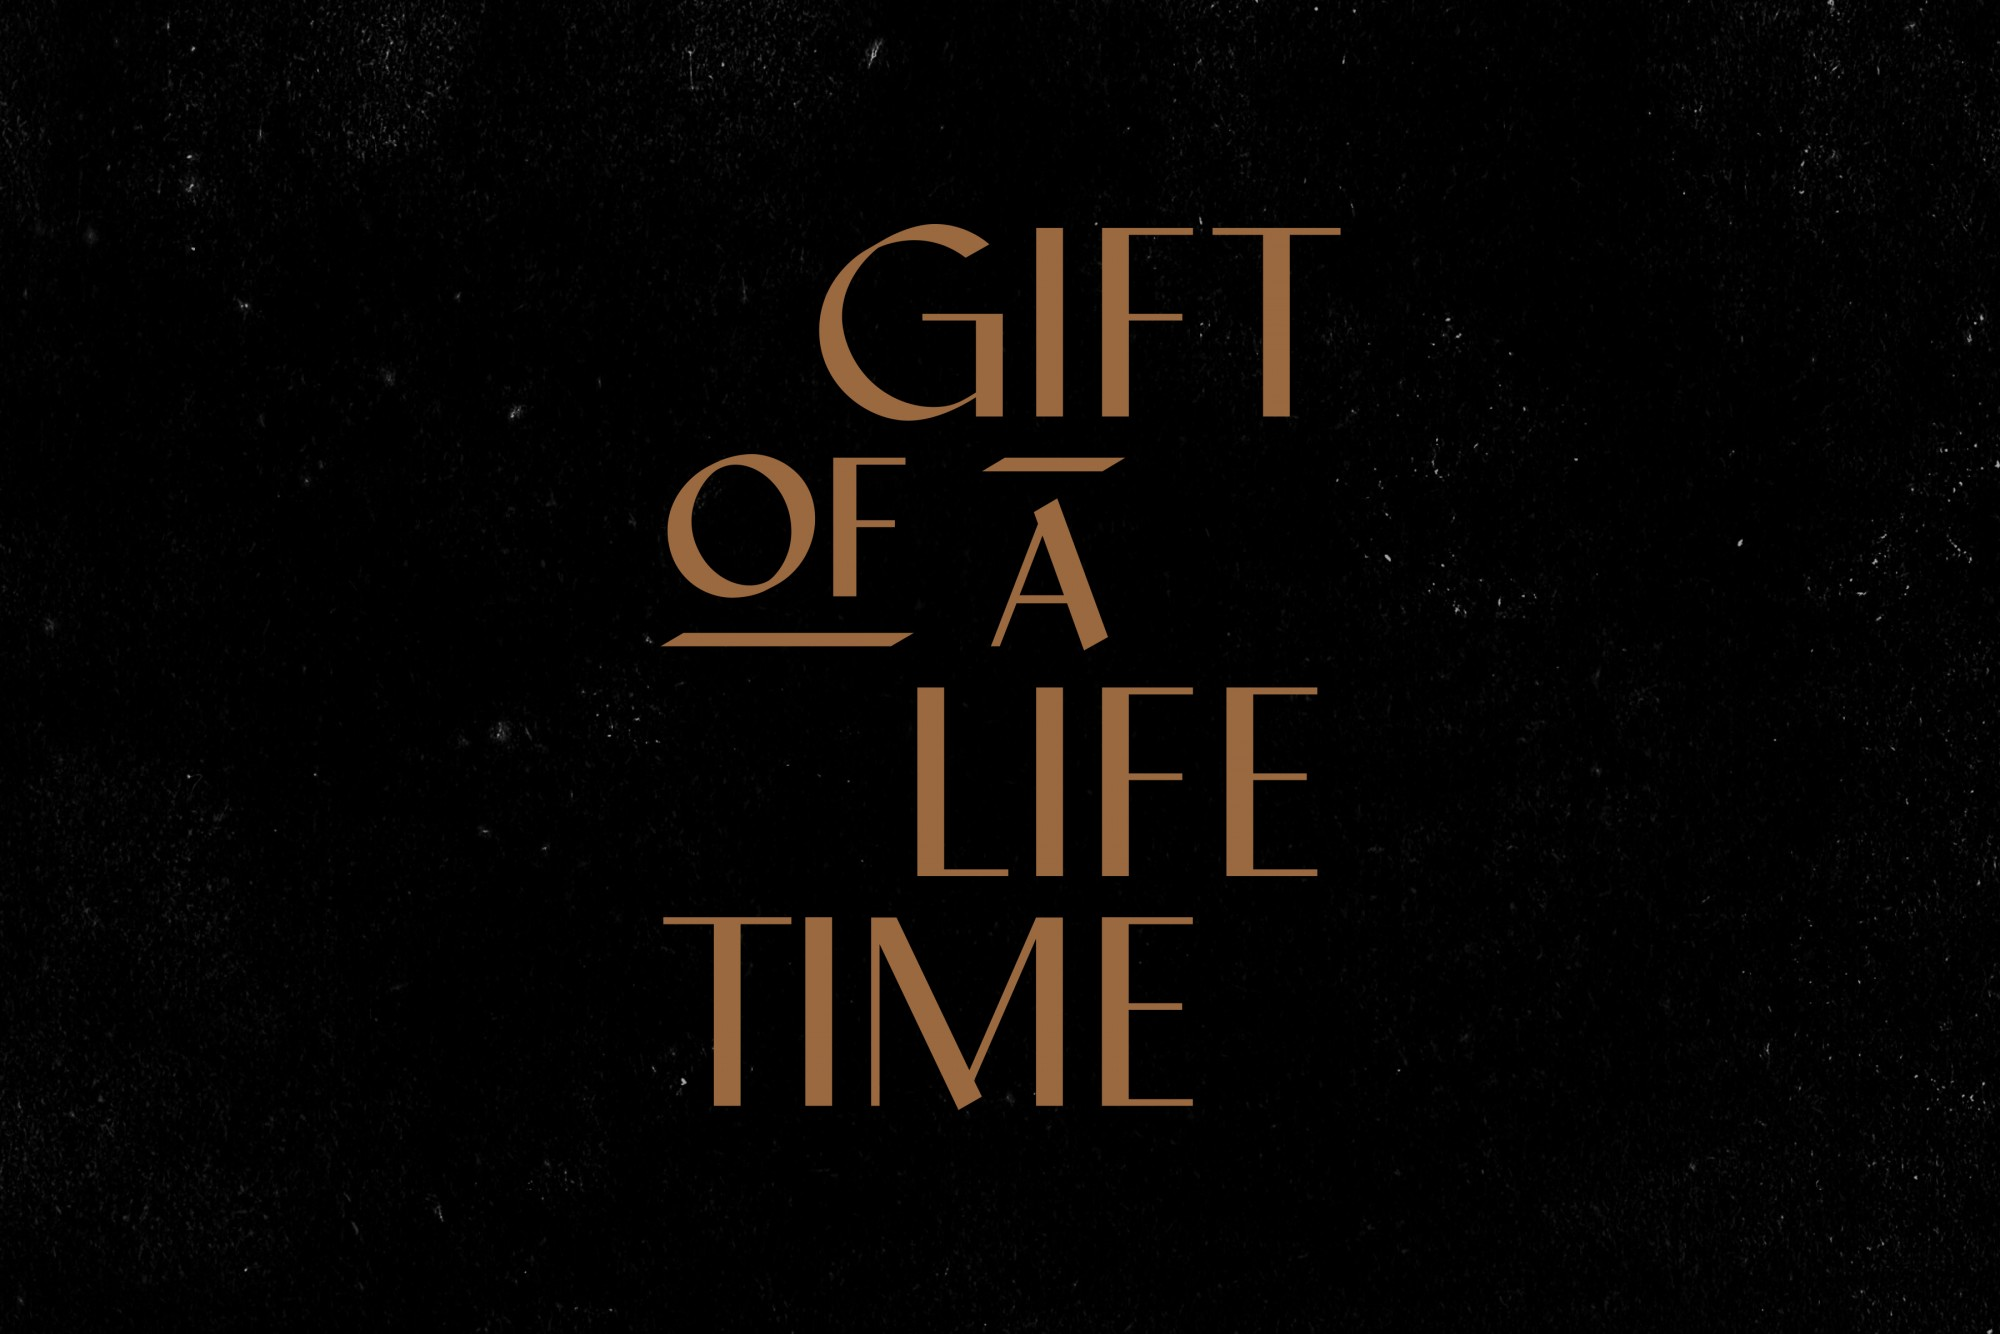 Cover image: Gift of a Lifetime